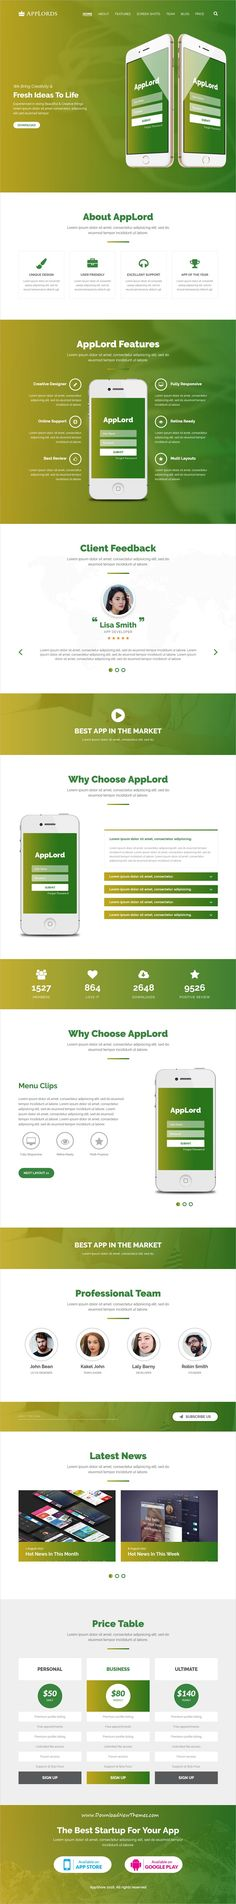 AppLords is clean and modern design 3in1 responsive #HTML template for #onepage app, events and product #landingpage website download now..